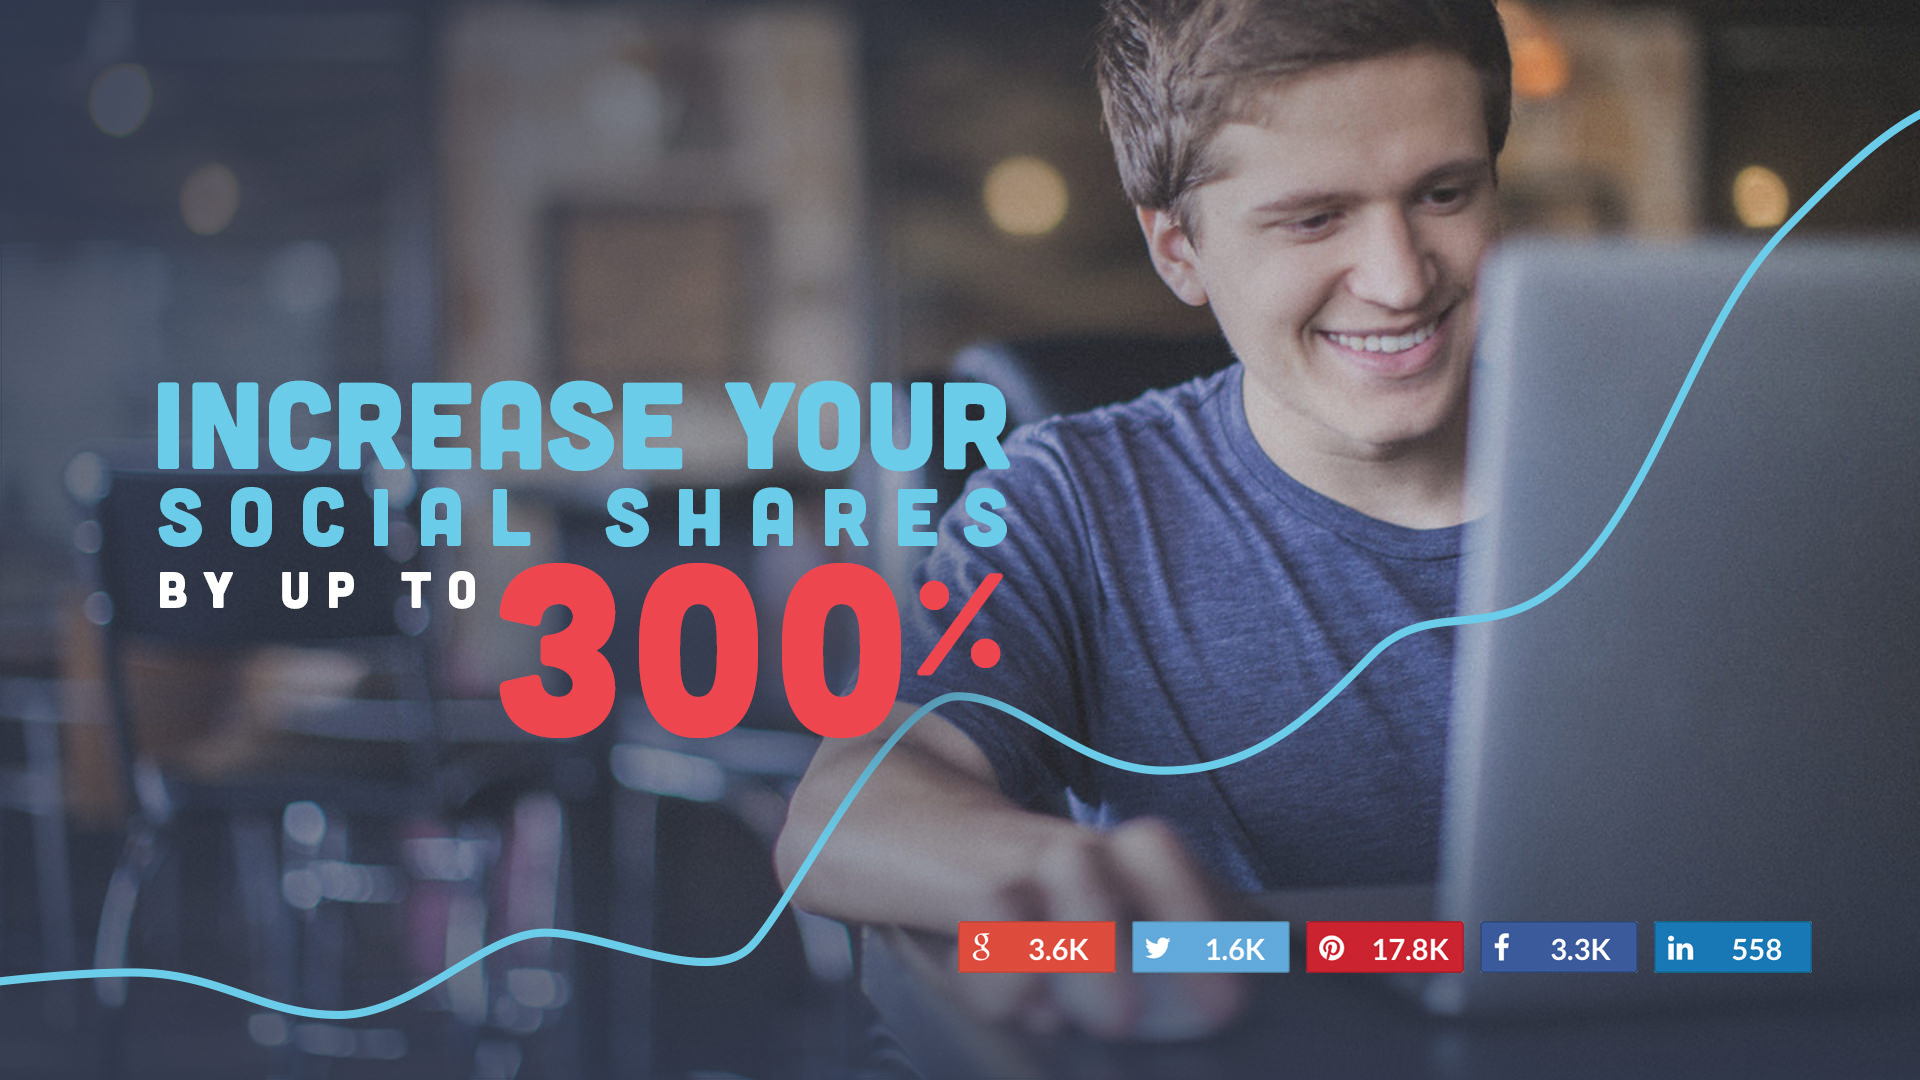 increase your social shares up to 300%